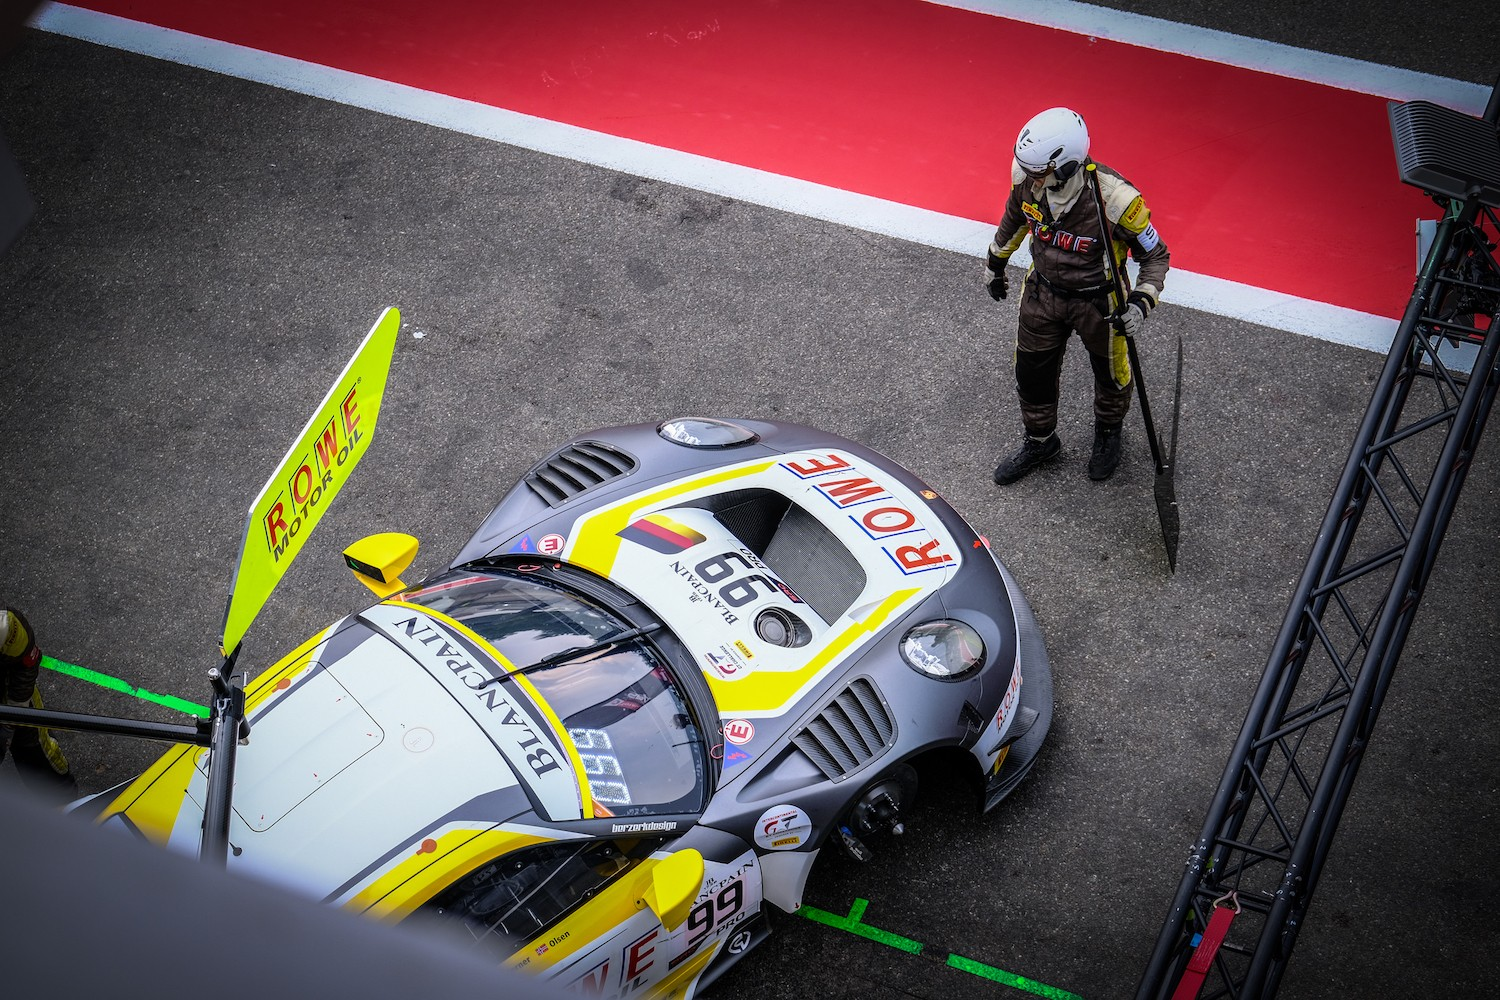 ROWE confirms line-up for 2020 Endurance Cup assault